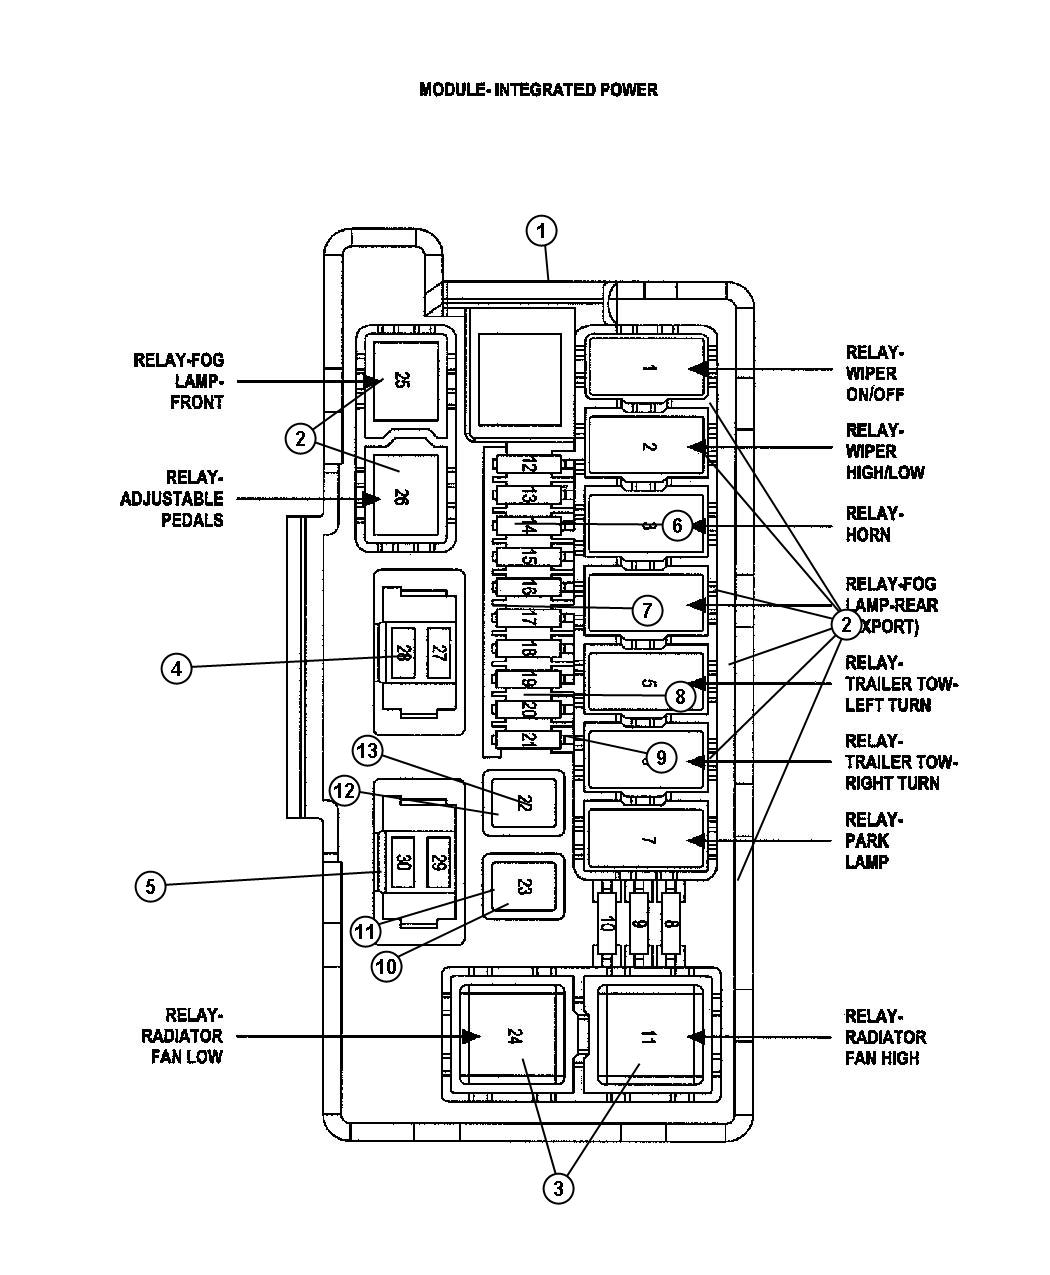 power commander 5 wiring diagram with Showassembly on 1s2rr Need Diagram Fuse Panel 93 Jeep Grand Cherokee additionally 4 Door Luxury Cars Wiring Diagrams furthermore Wk fuses besides Sci Fi Schematics moreover 1996 Mazda Miata Mx 5 Interior Fuse Box Diagram.